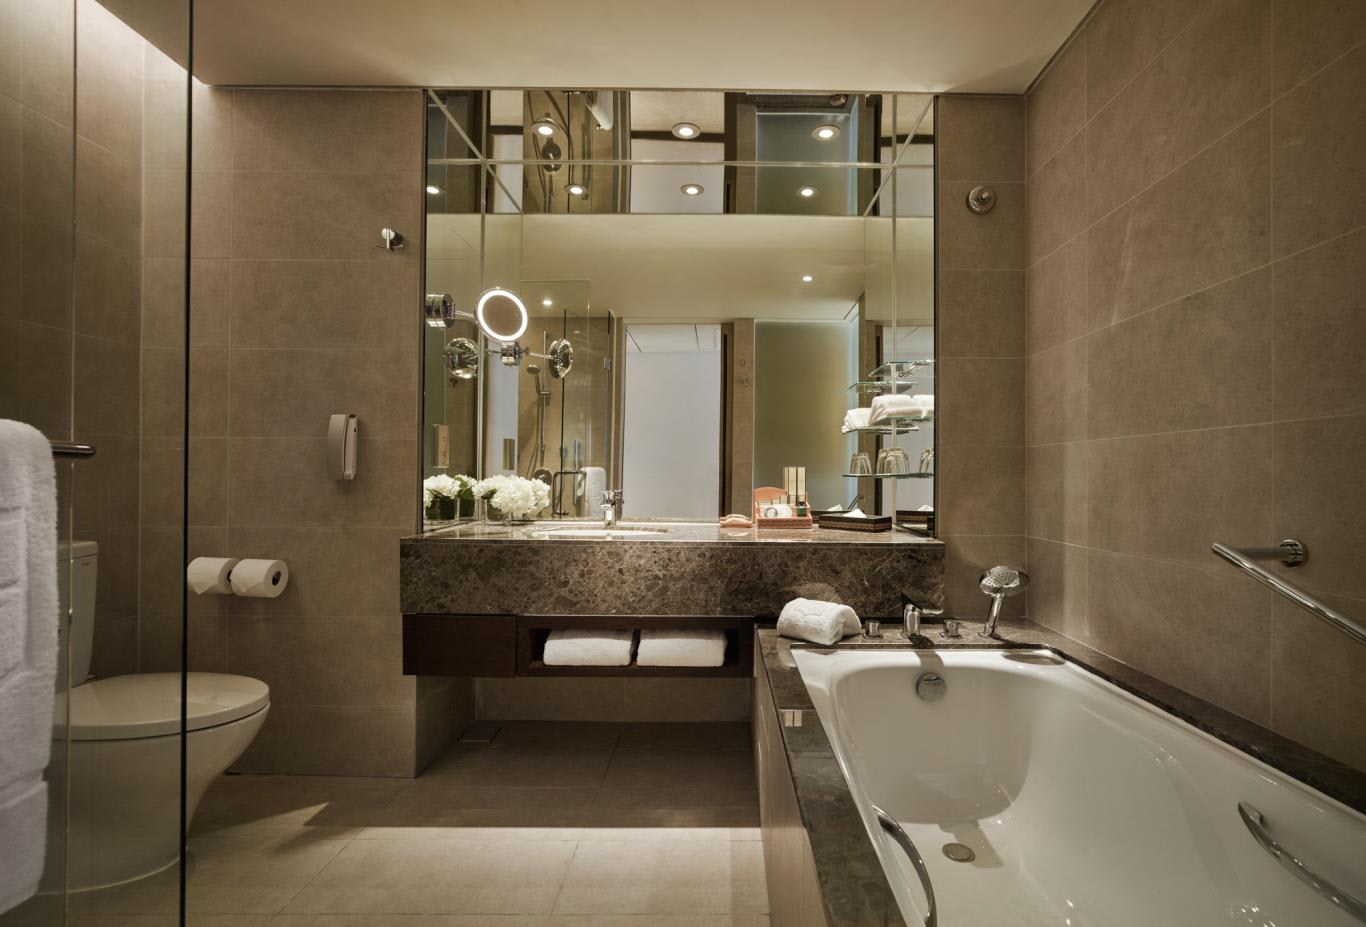 Tanjung Wing Deluxe room bathroom